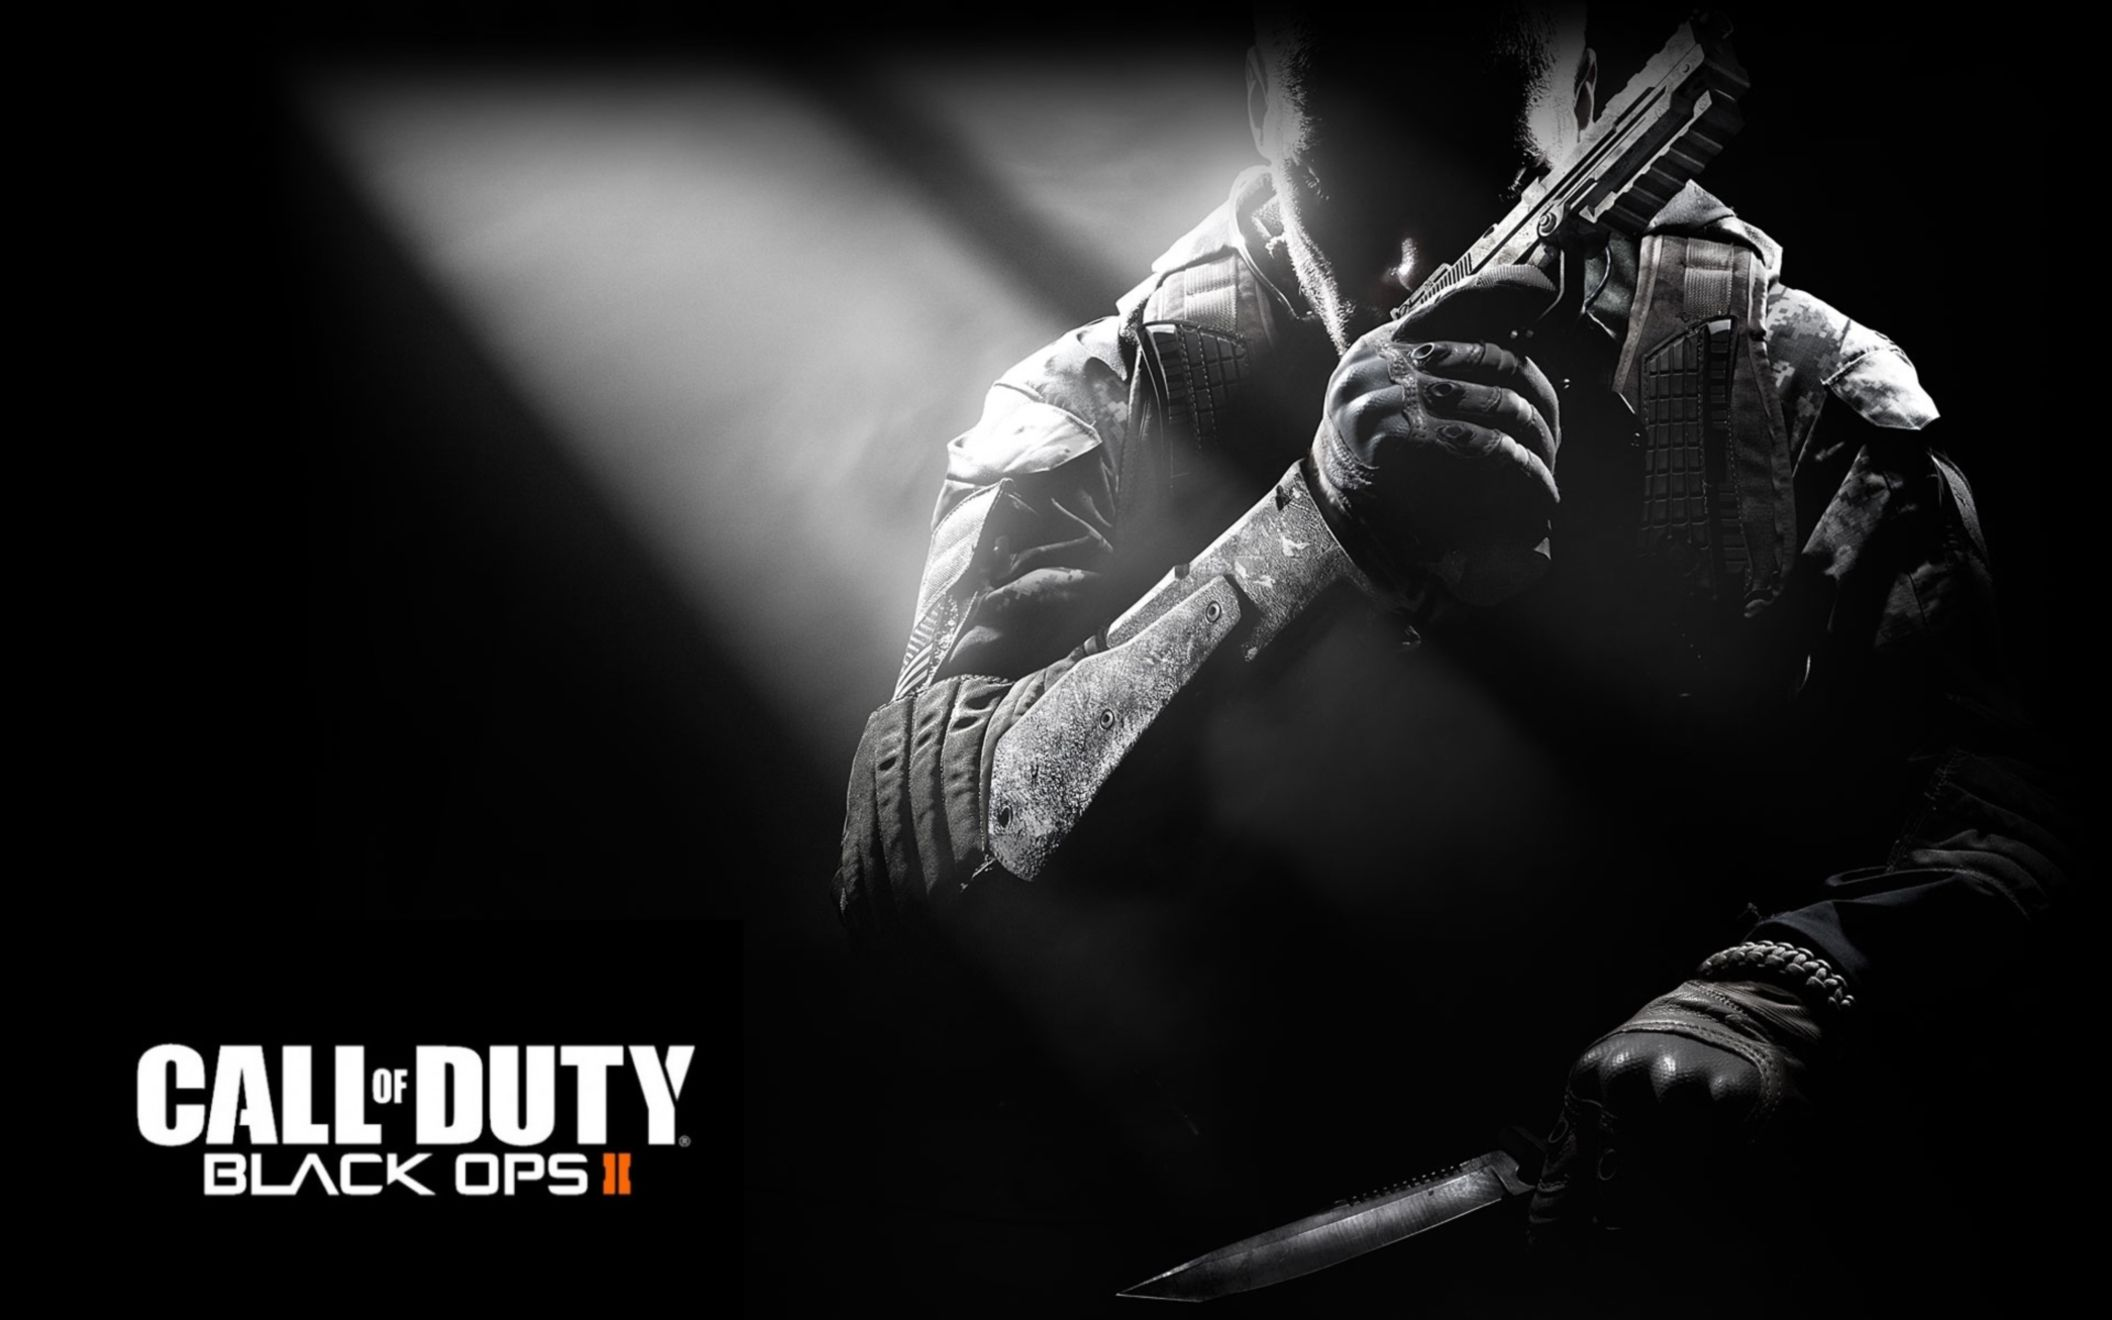 Download free HD Call Of Duty Black Ops 2 Wide Wallpaper, image